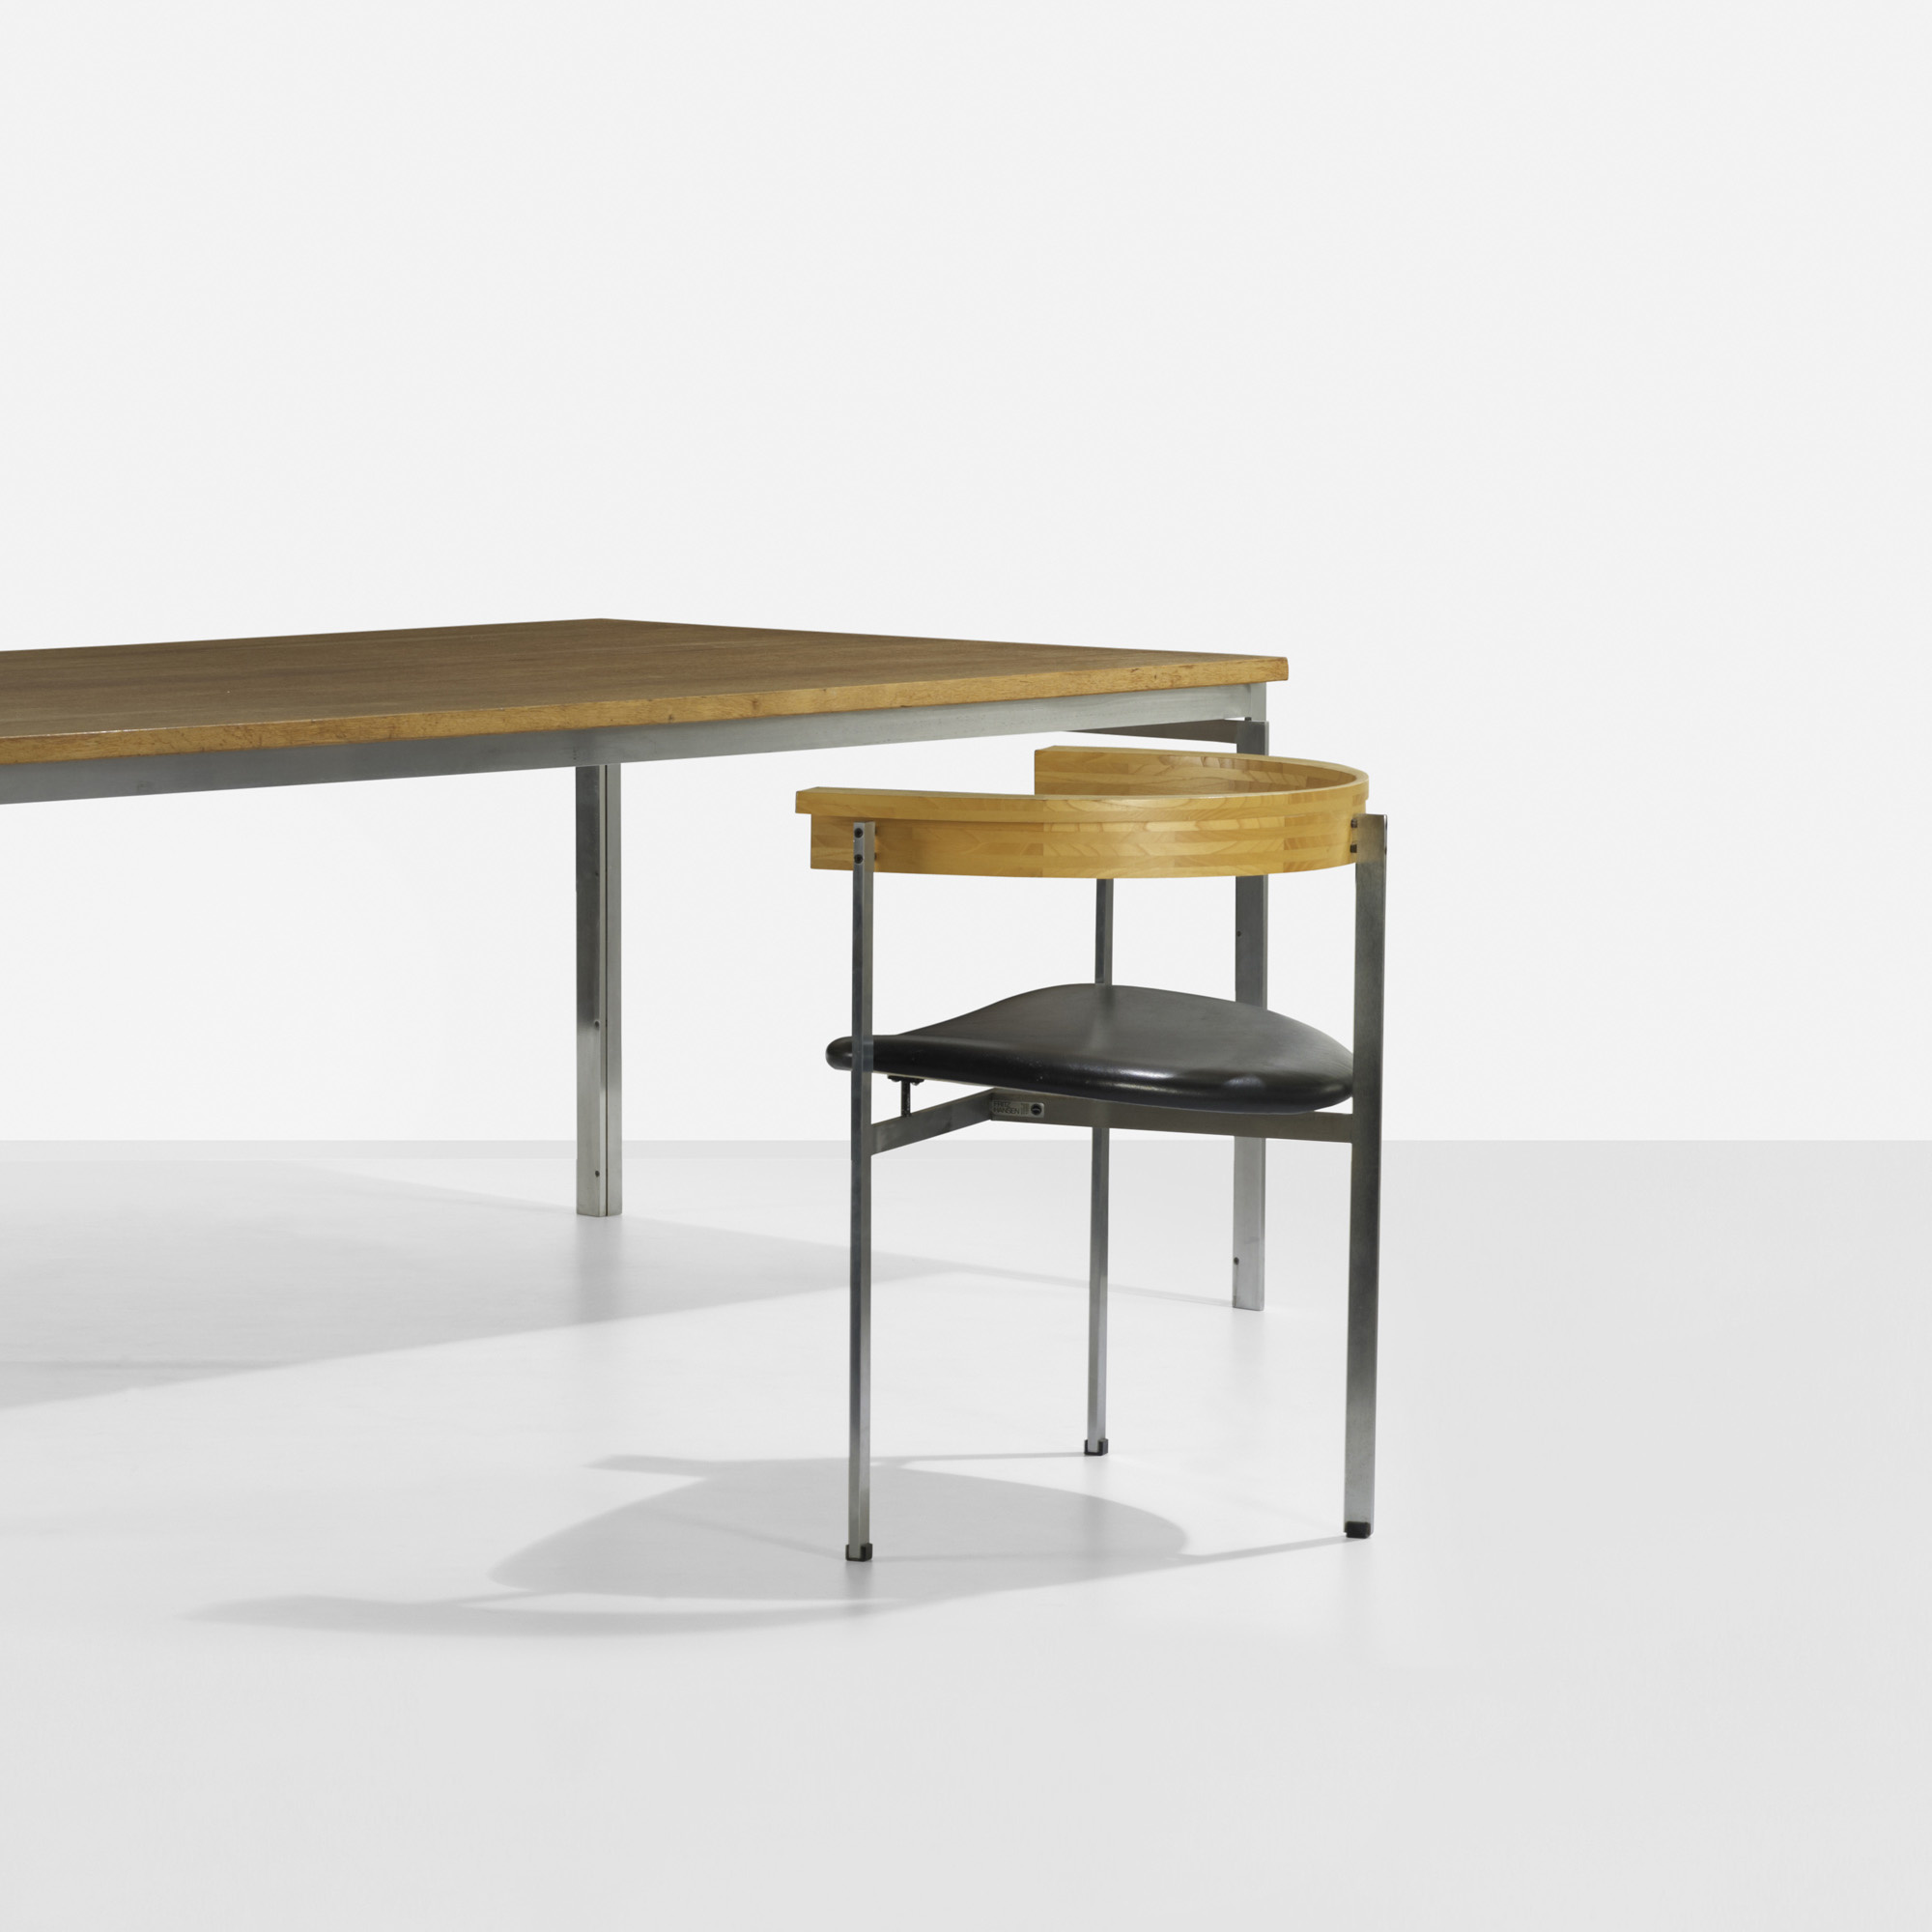 ... 296: Poul Kjaerholm / PK 55 Dining Table And PK 11 Chair (2 Of